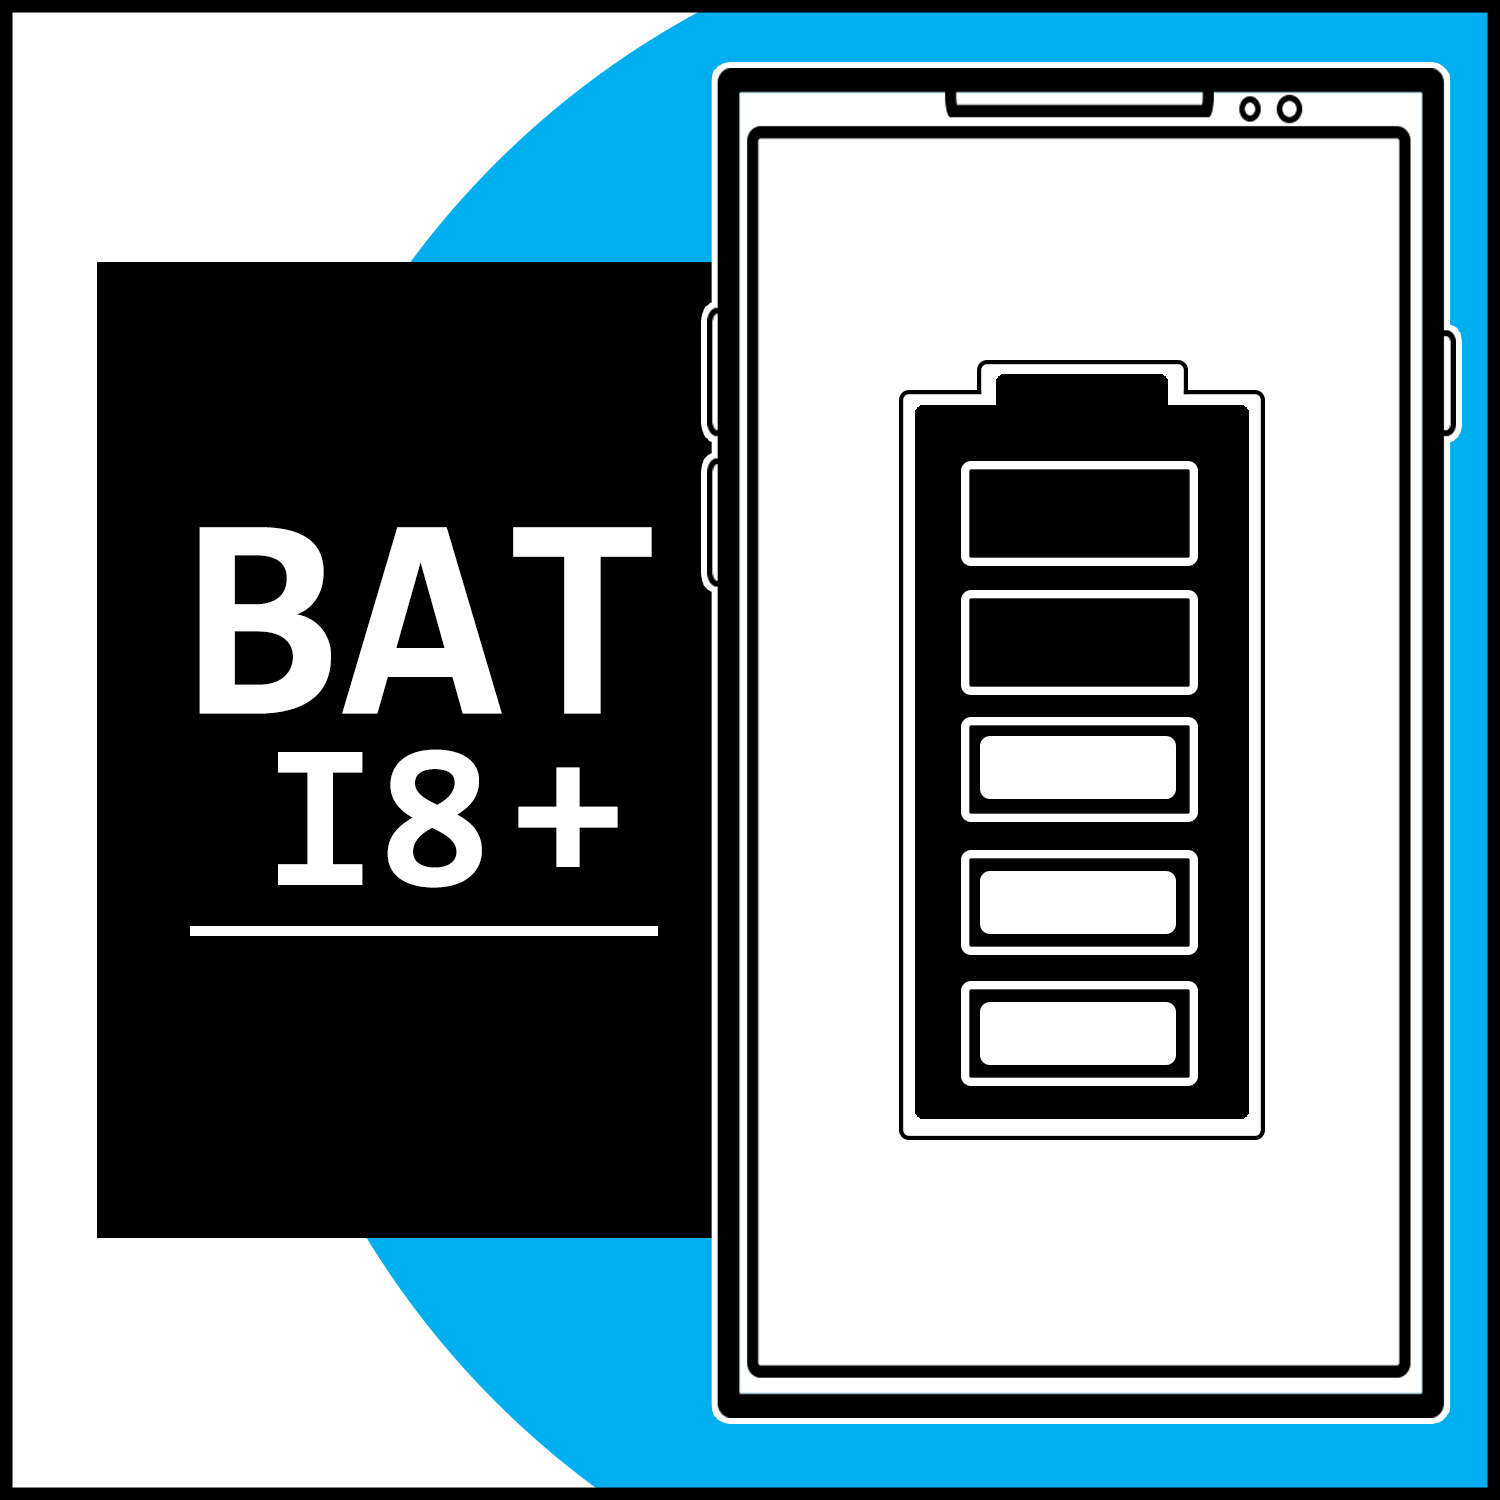 i8 plus BAT logo.jpg